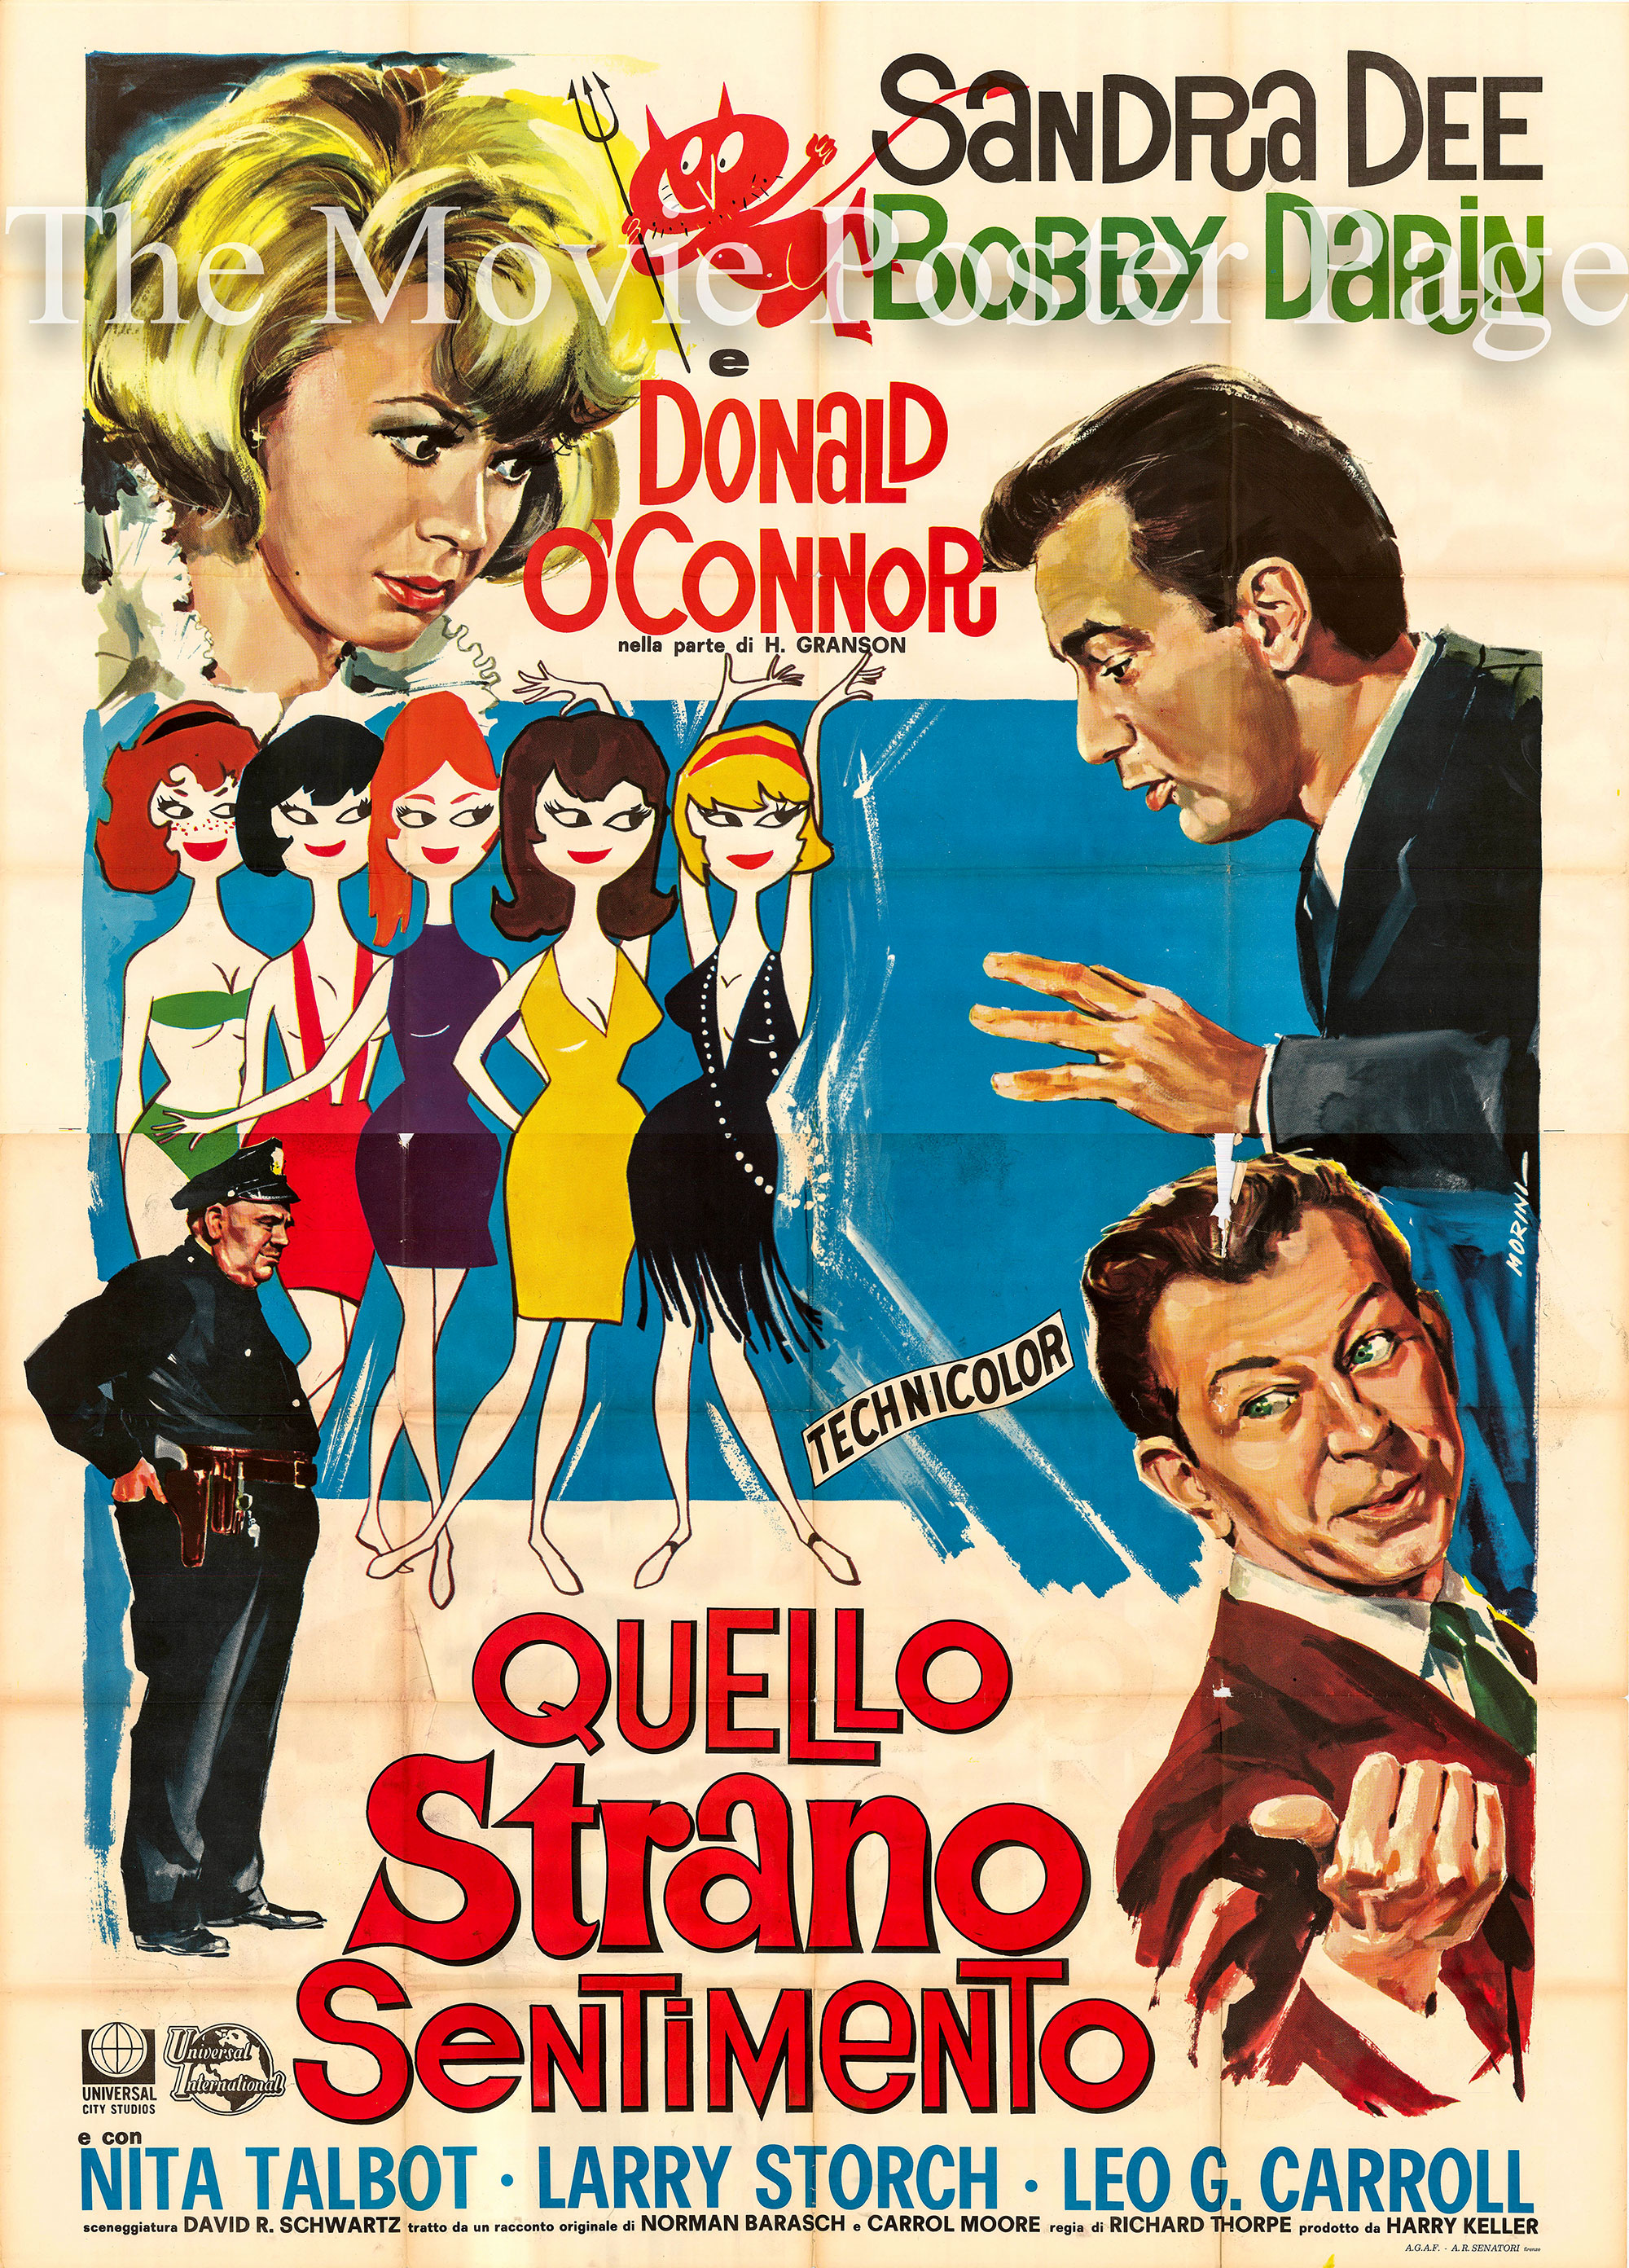 Pictured is an Italian four-sheet poster for the 1965 Richard Thorpe film <i>That Funny Feeling</i> starring Bobby Darin and Sandra Dee.